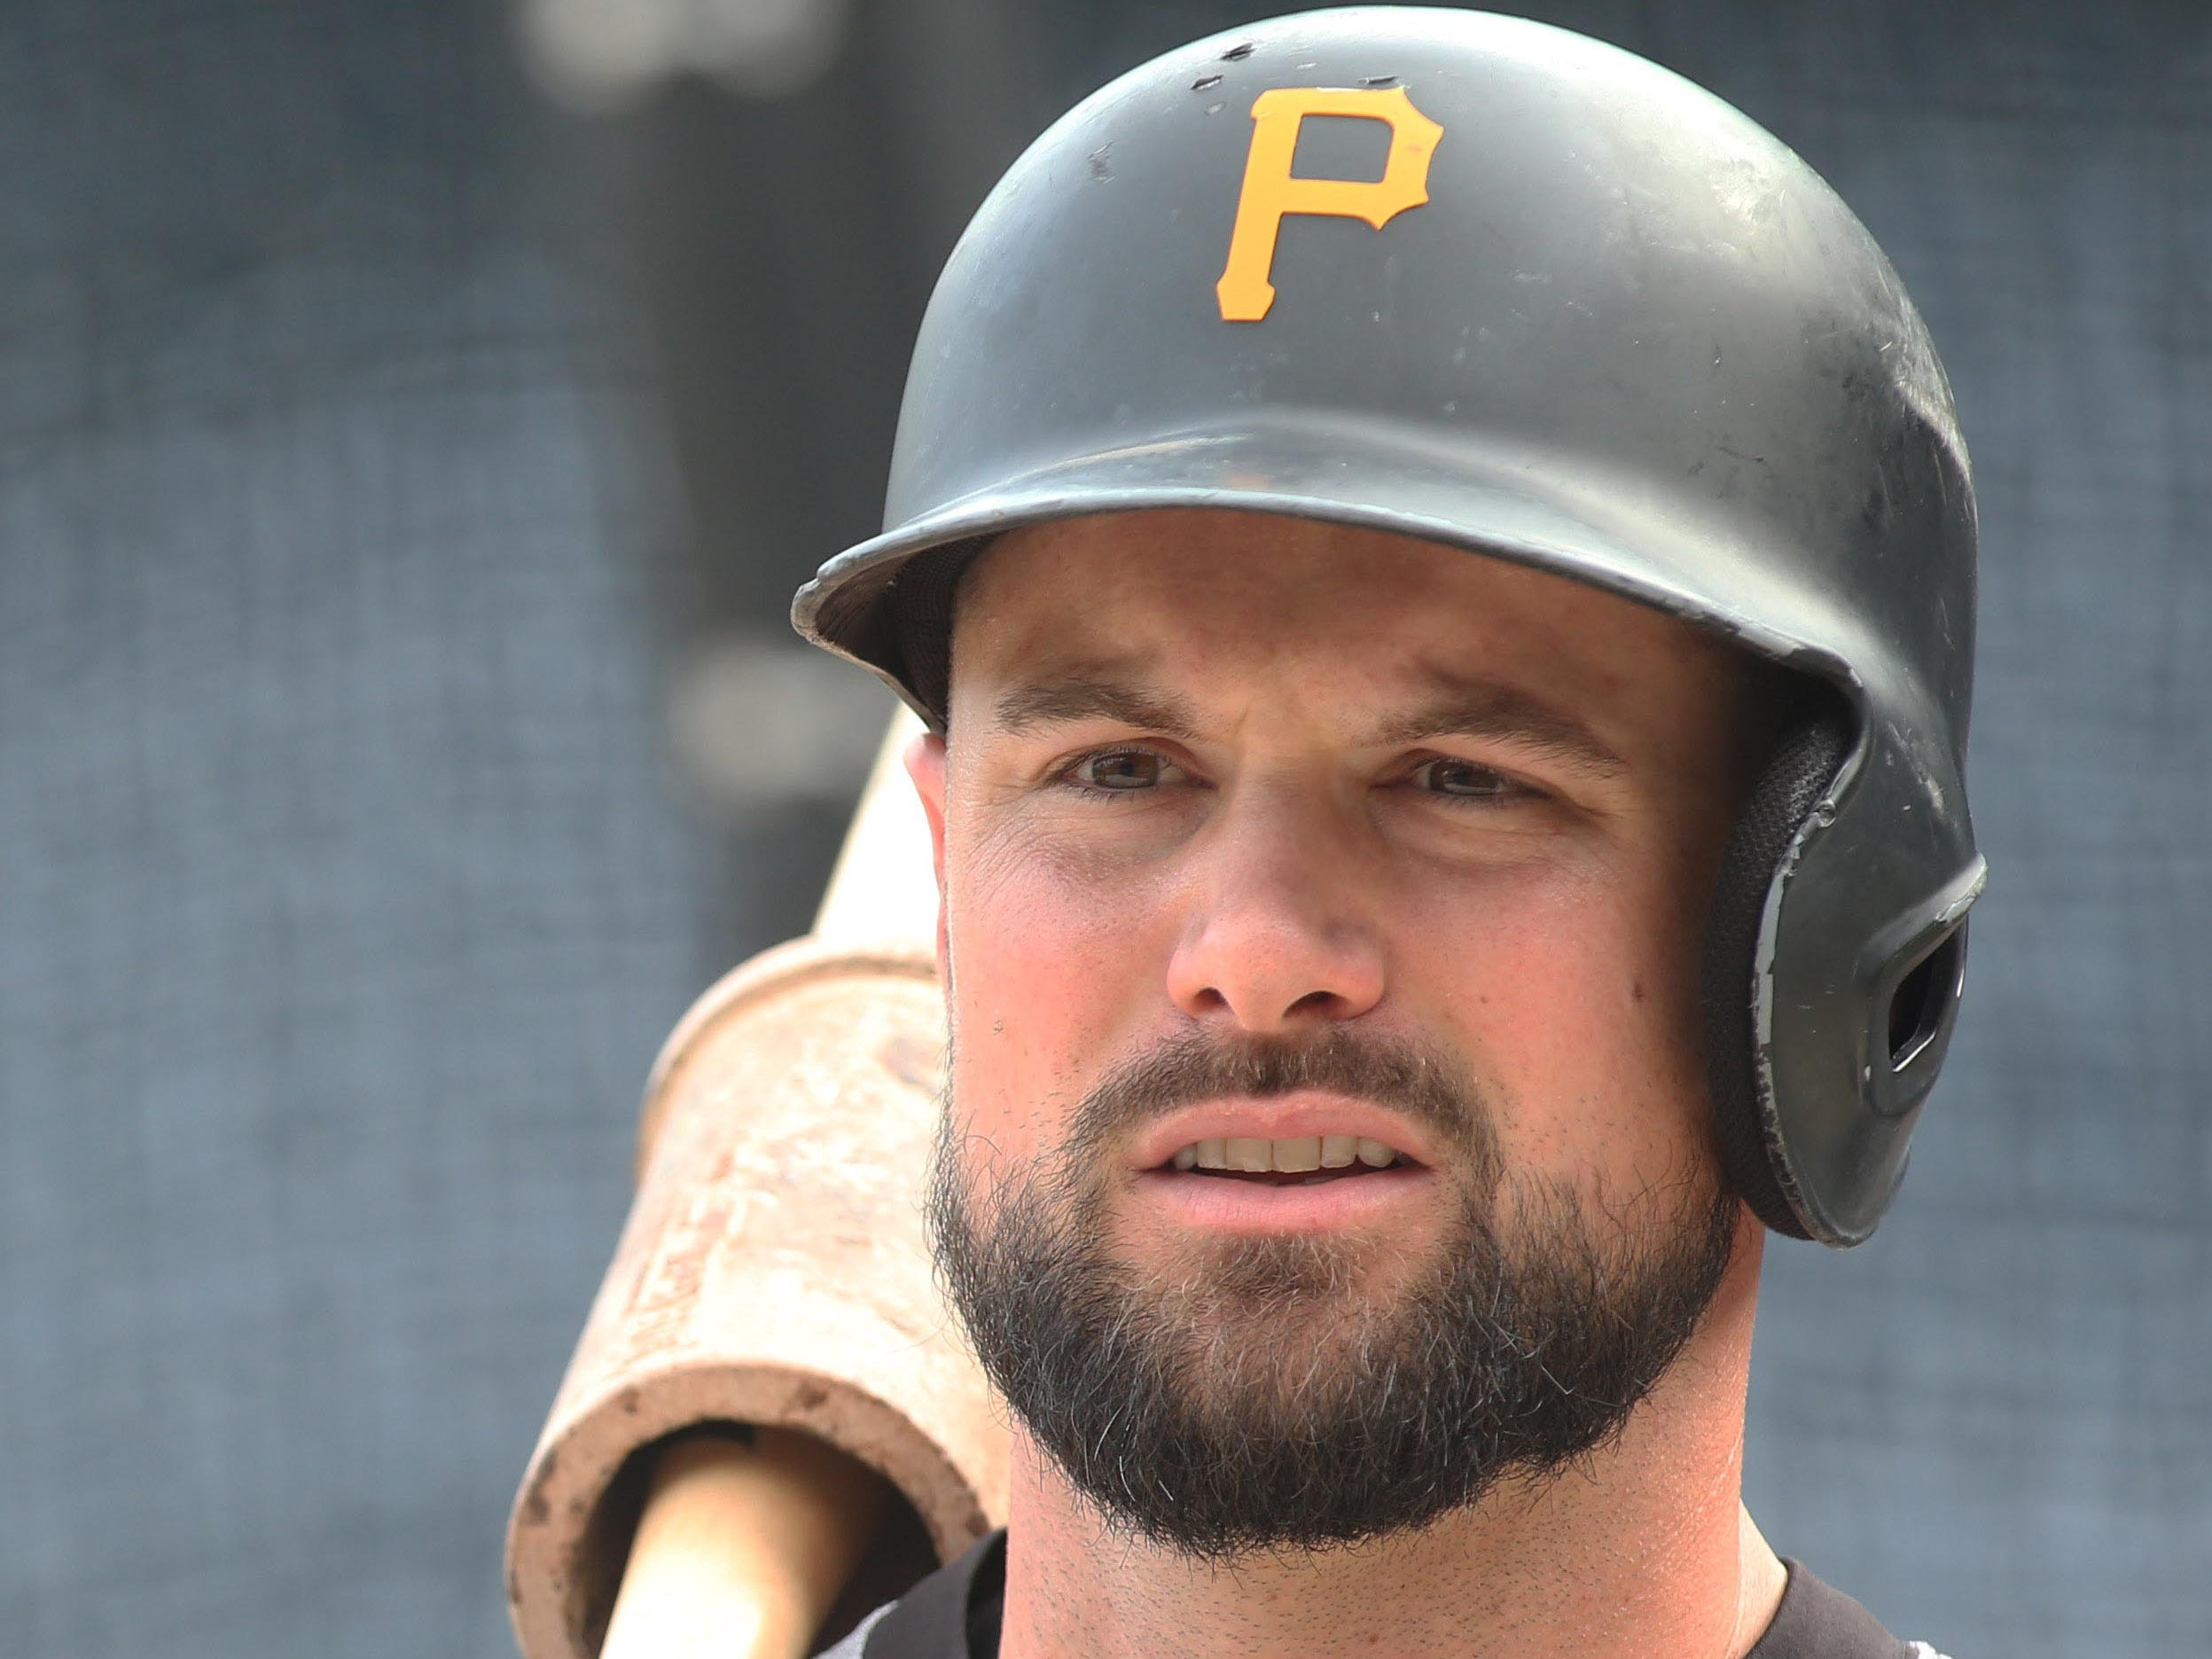 Pittsburgh Pirates shortstop Jordy Mercer looks on at the batting cage before a game at PNC Park, Sept. 7, 2018.